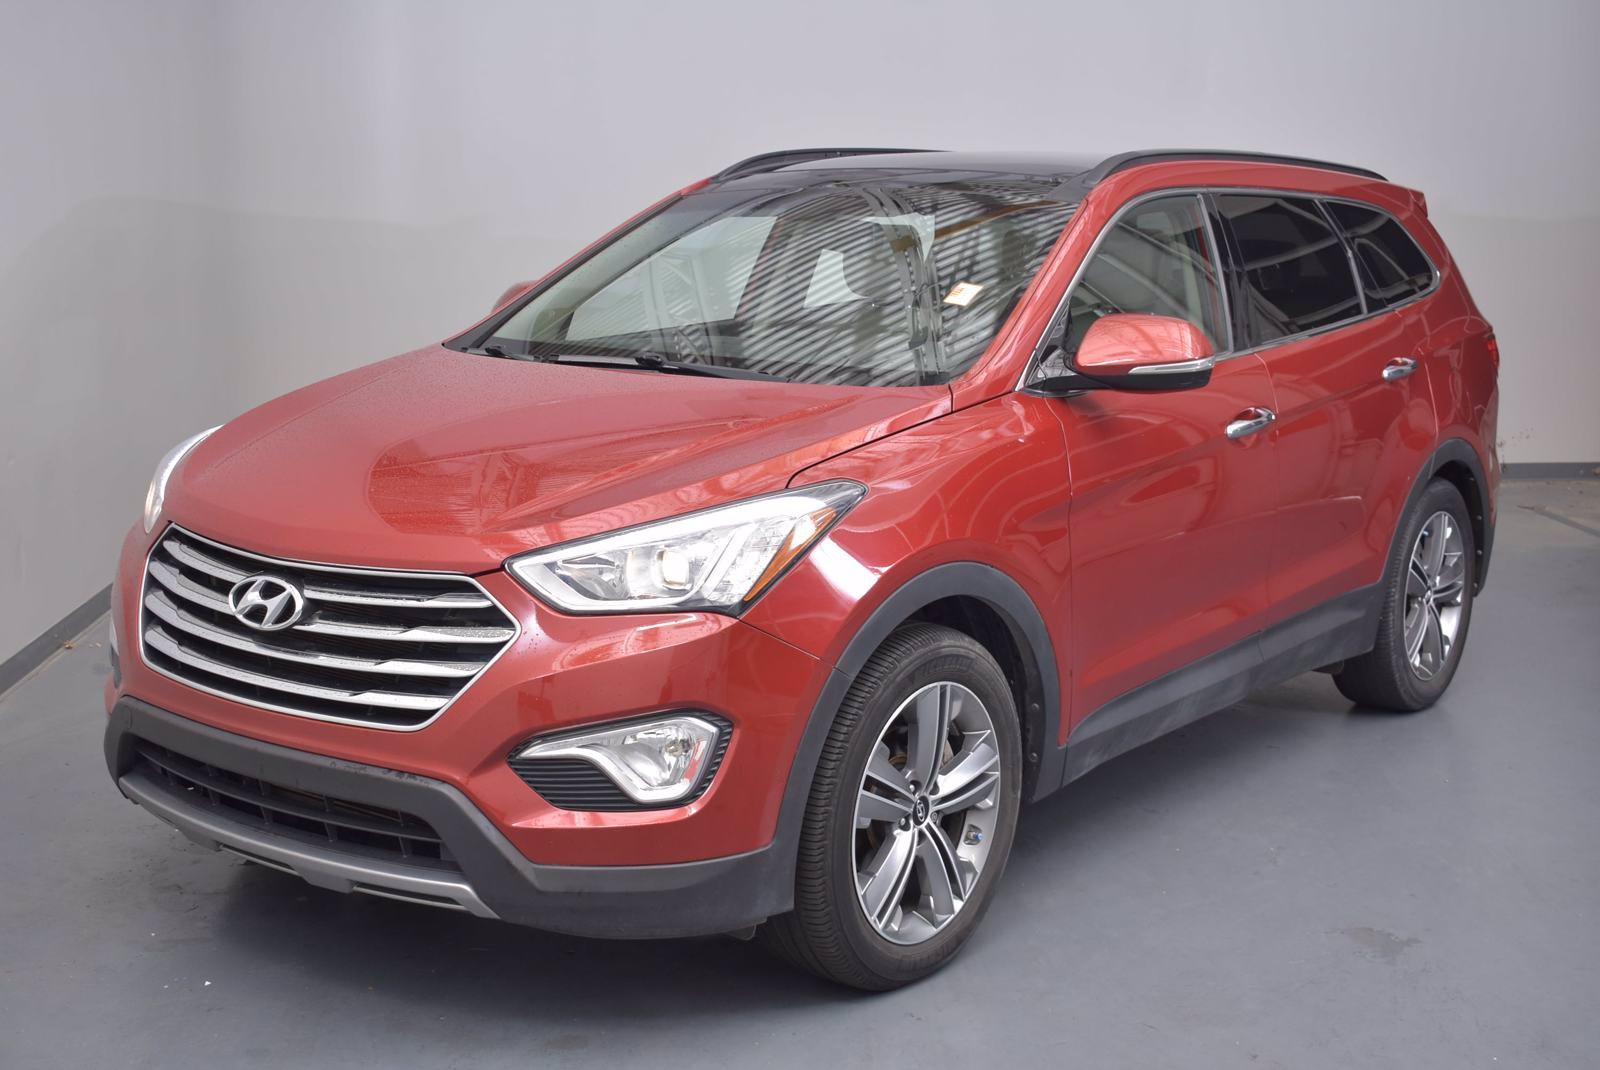 2014 Hyundai Santa Fe Vehicle Photo in Cary, NC 27511